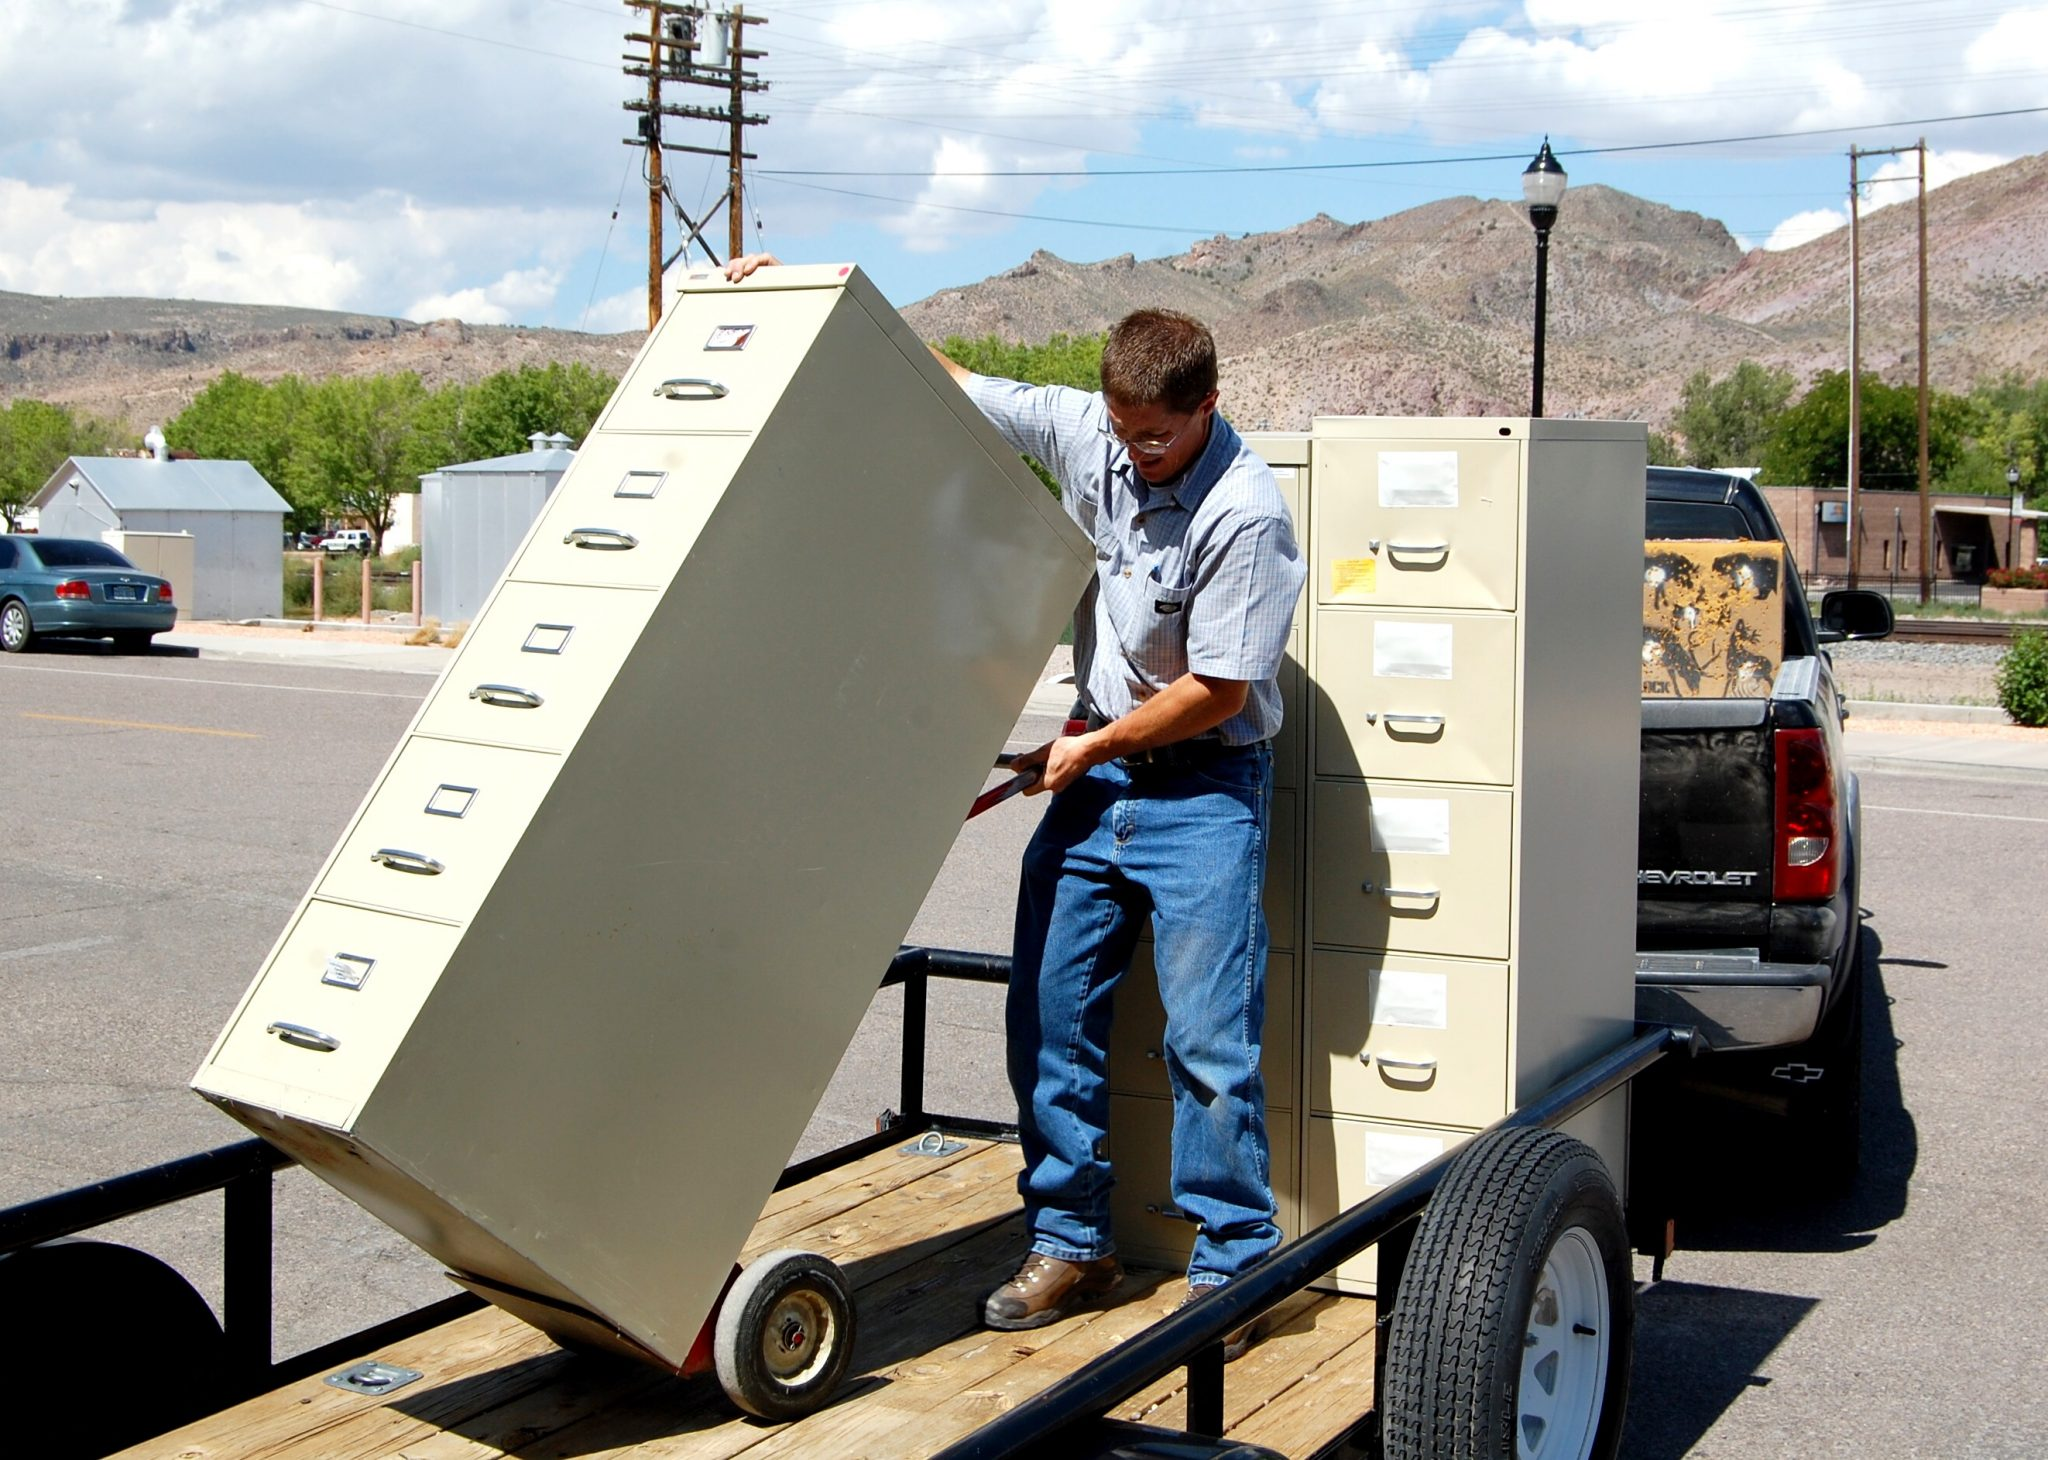 NV Energy donates office furniture to county